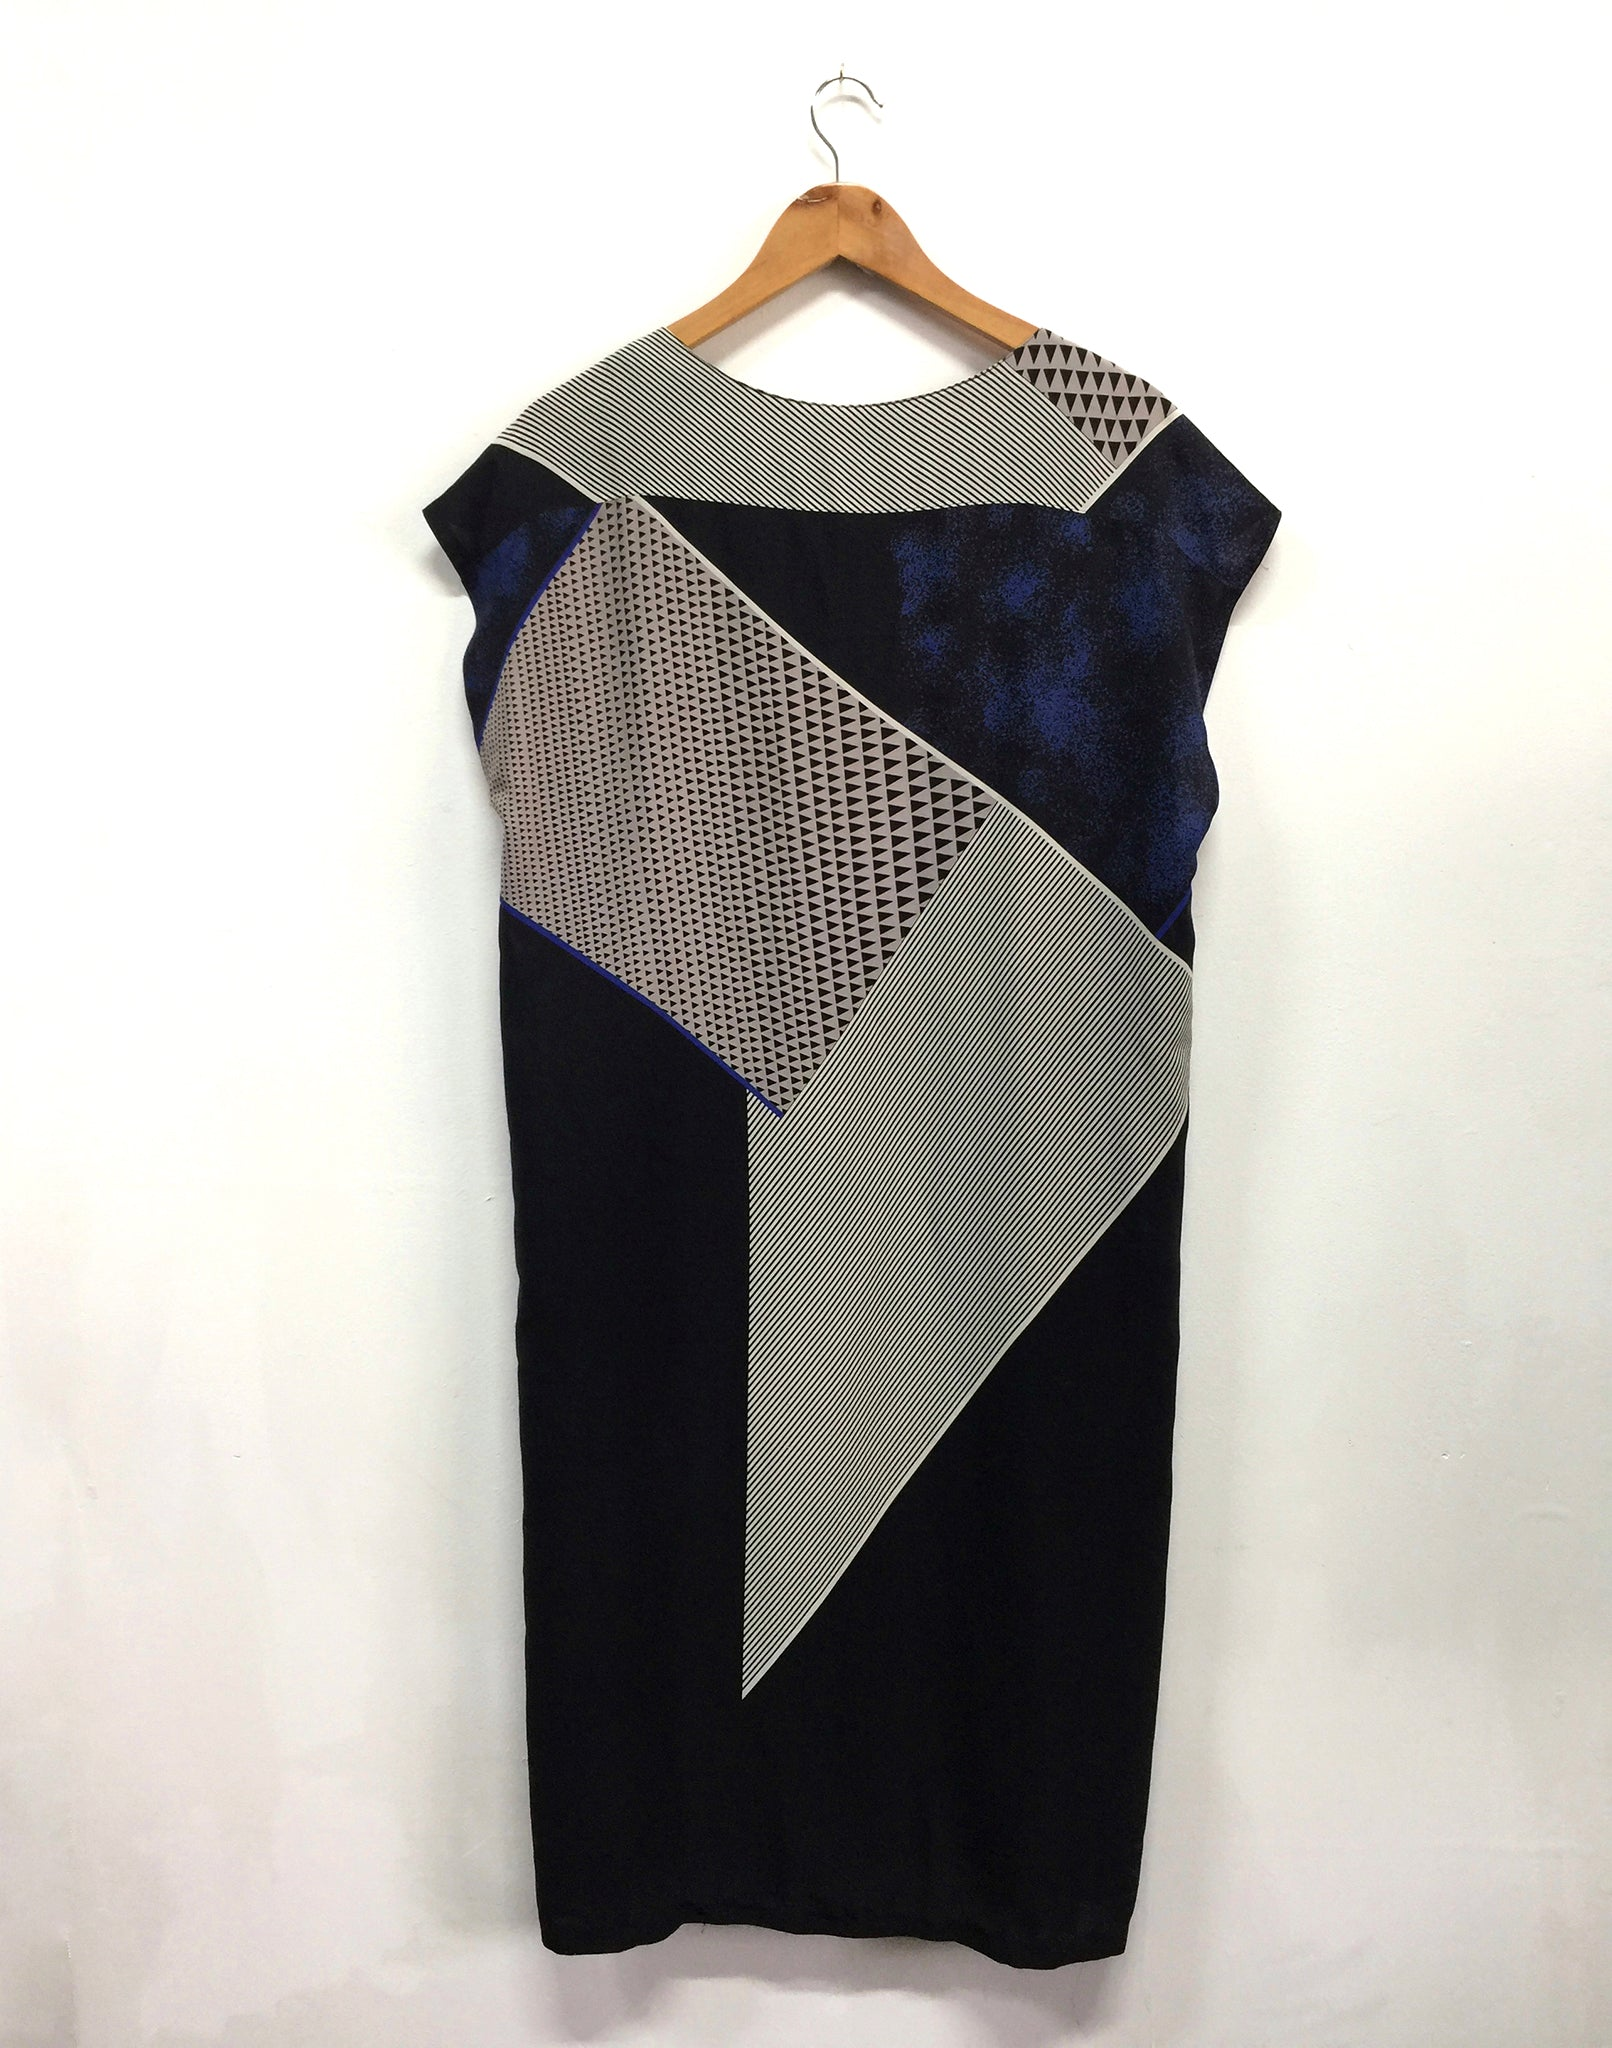 Vintage 80's Jual Geometric Dress